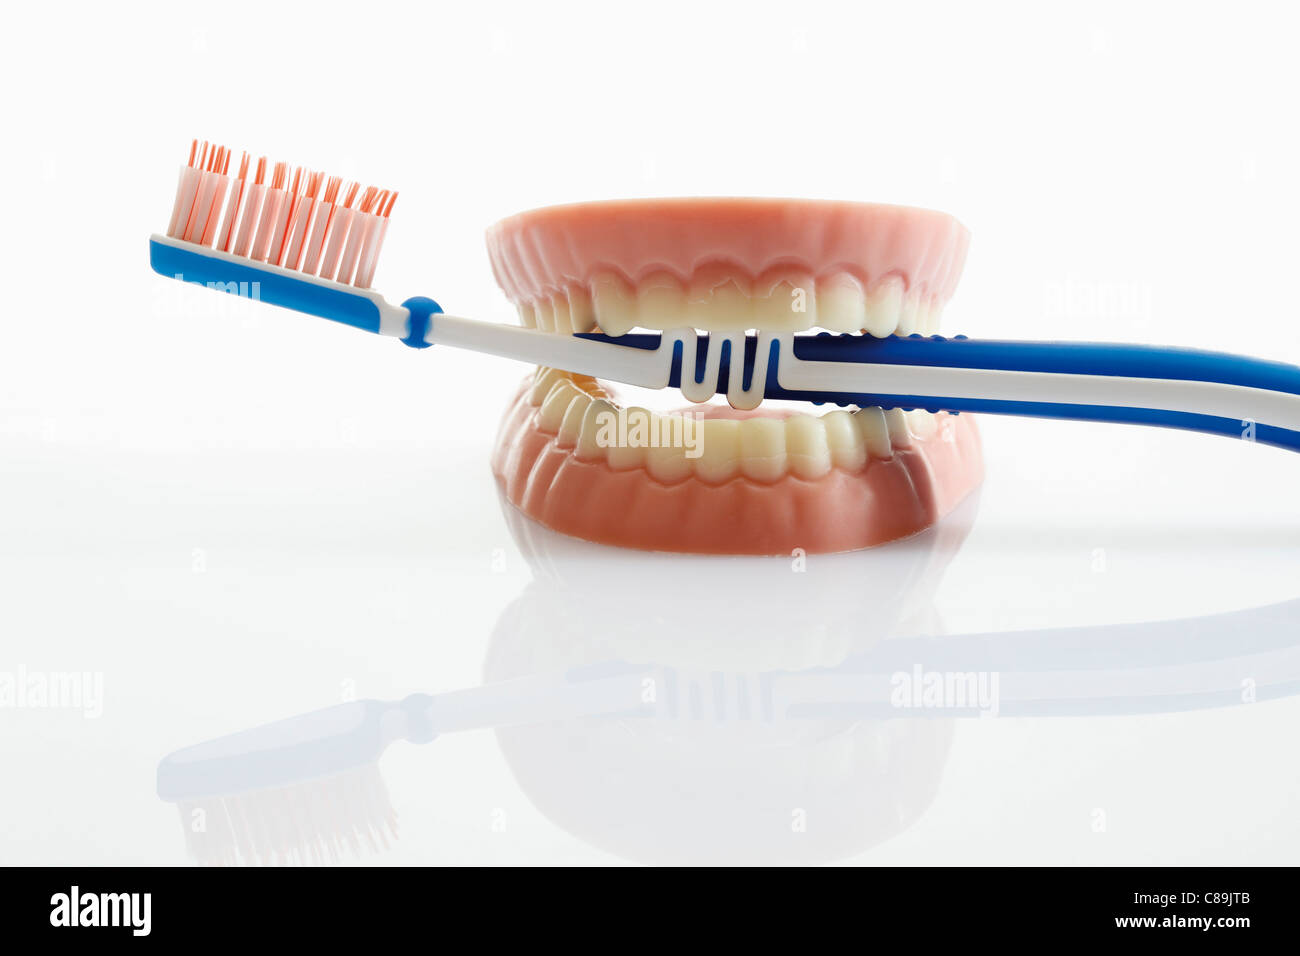 Dentures made of sugar and white chocolate with toothbrush on white background, close up - Stock Image